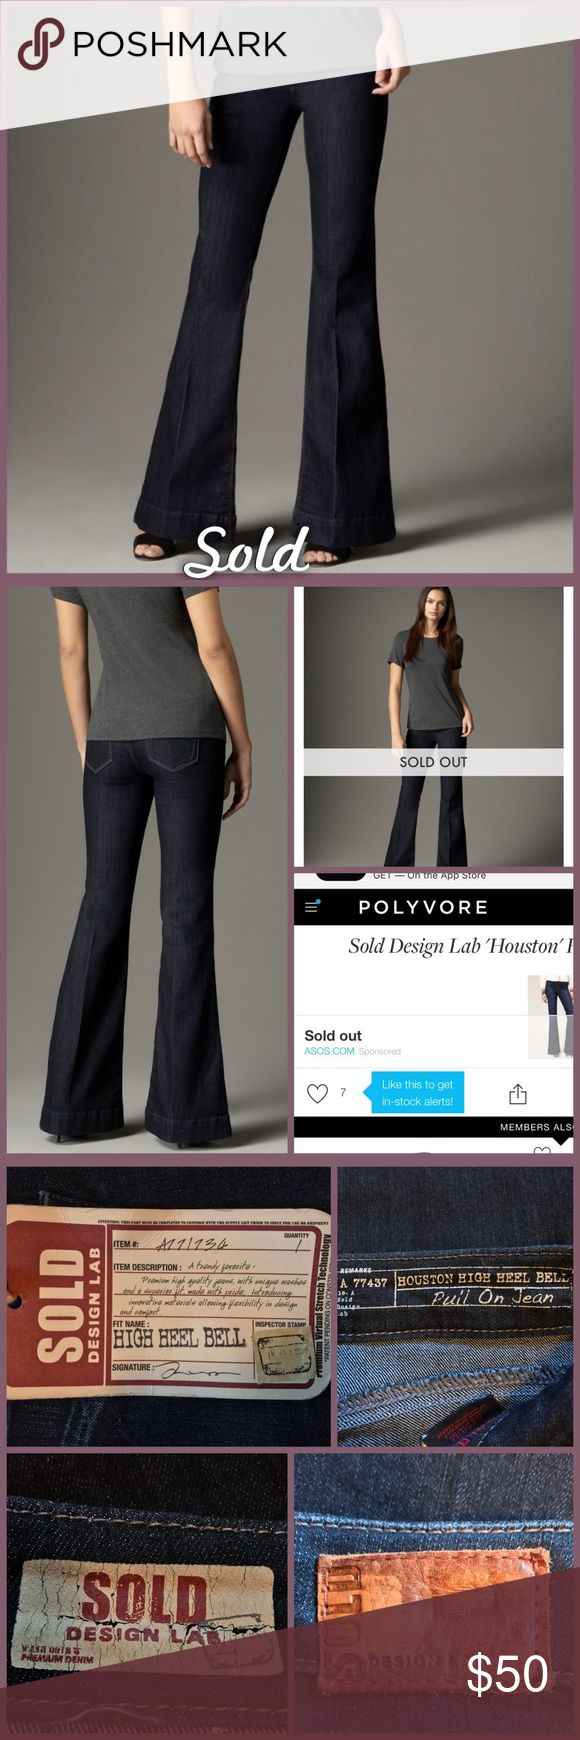 Sold Design Lab Flare Jeans Houston High Hell Belle from Sold, size medium, NWT. See size chart for number equivalent. Very soft jeans with a beautiful flare. Perfect for high heels!!! •I'm open to offers on all items!• Sold Design Lab Jeans Flare & Wide Leg